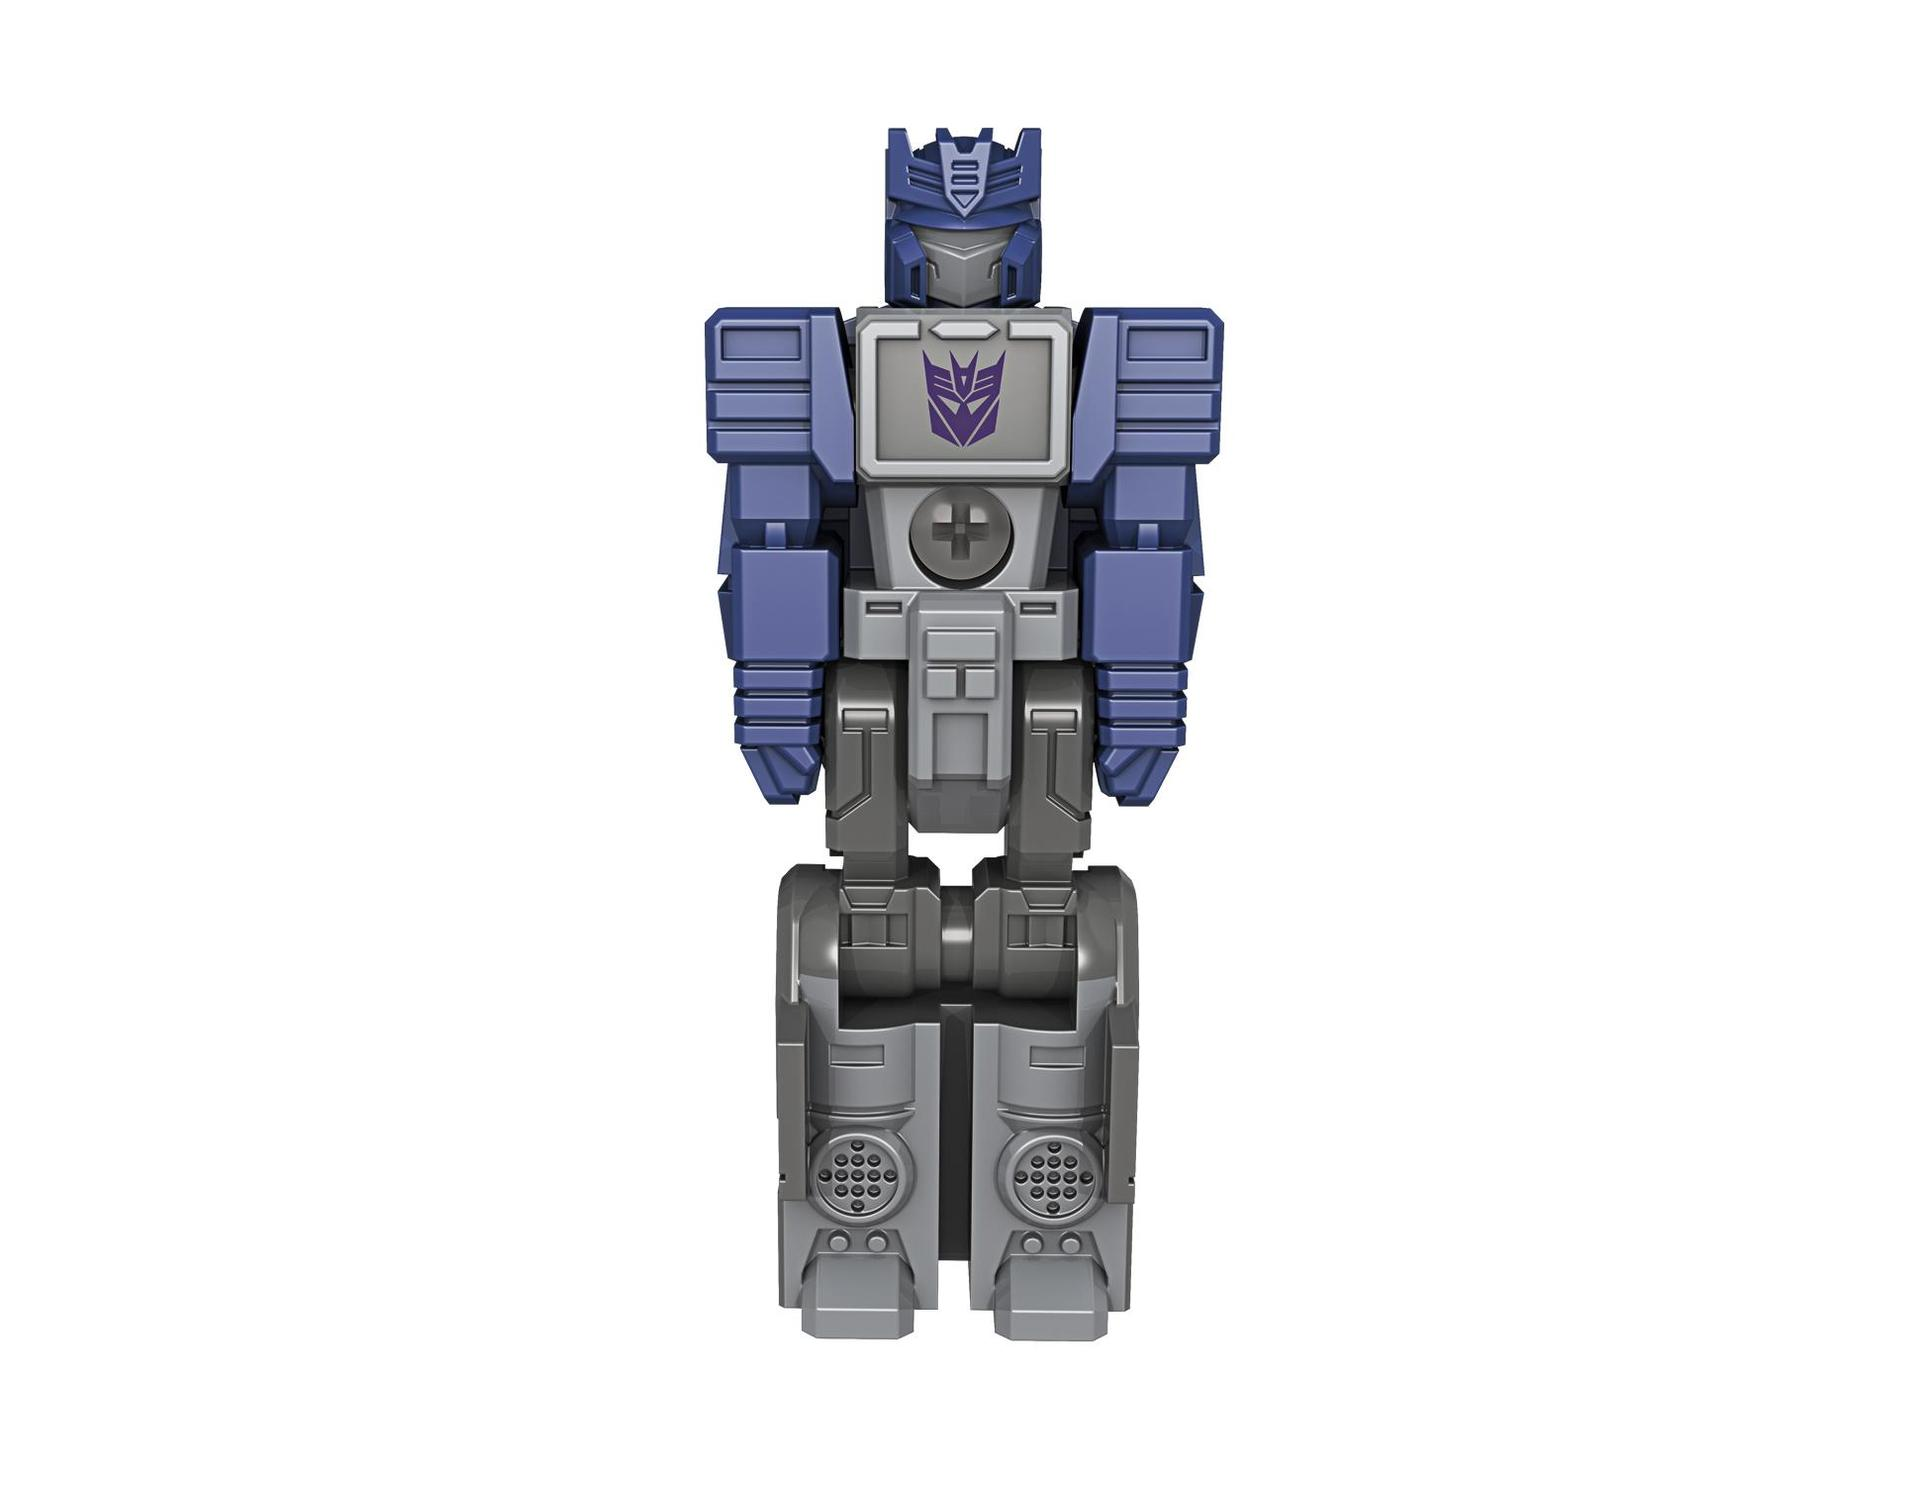 Titans Return Leader Class Soundwave Revealed-titans-soundwave-03.jpg